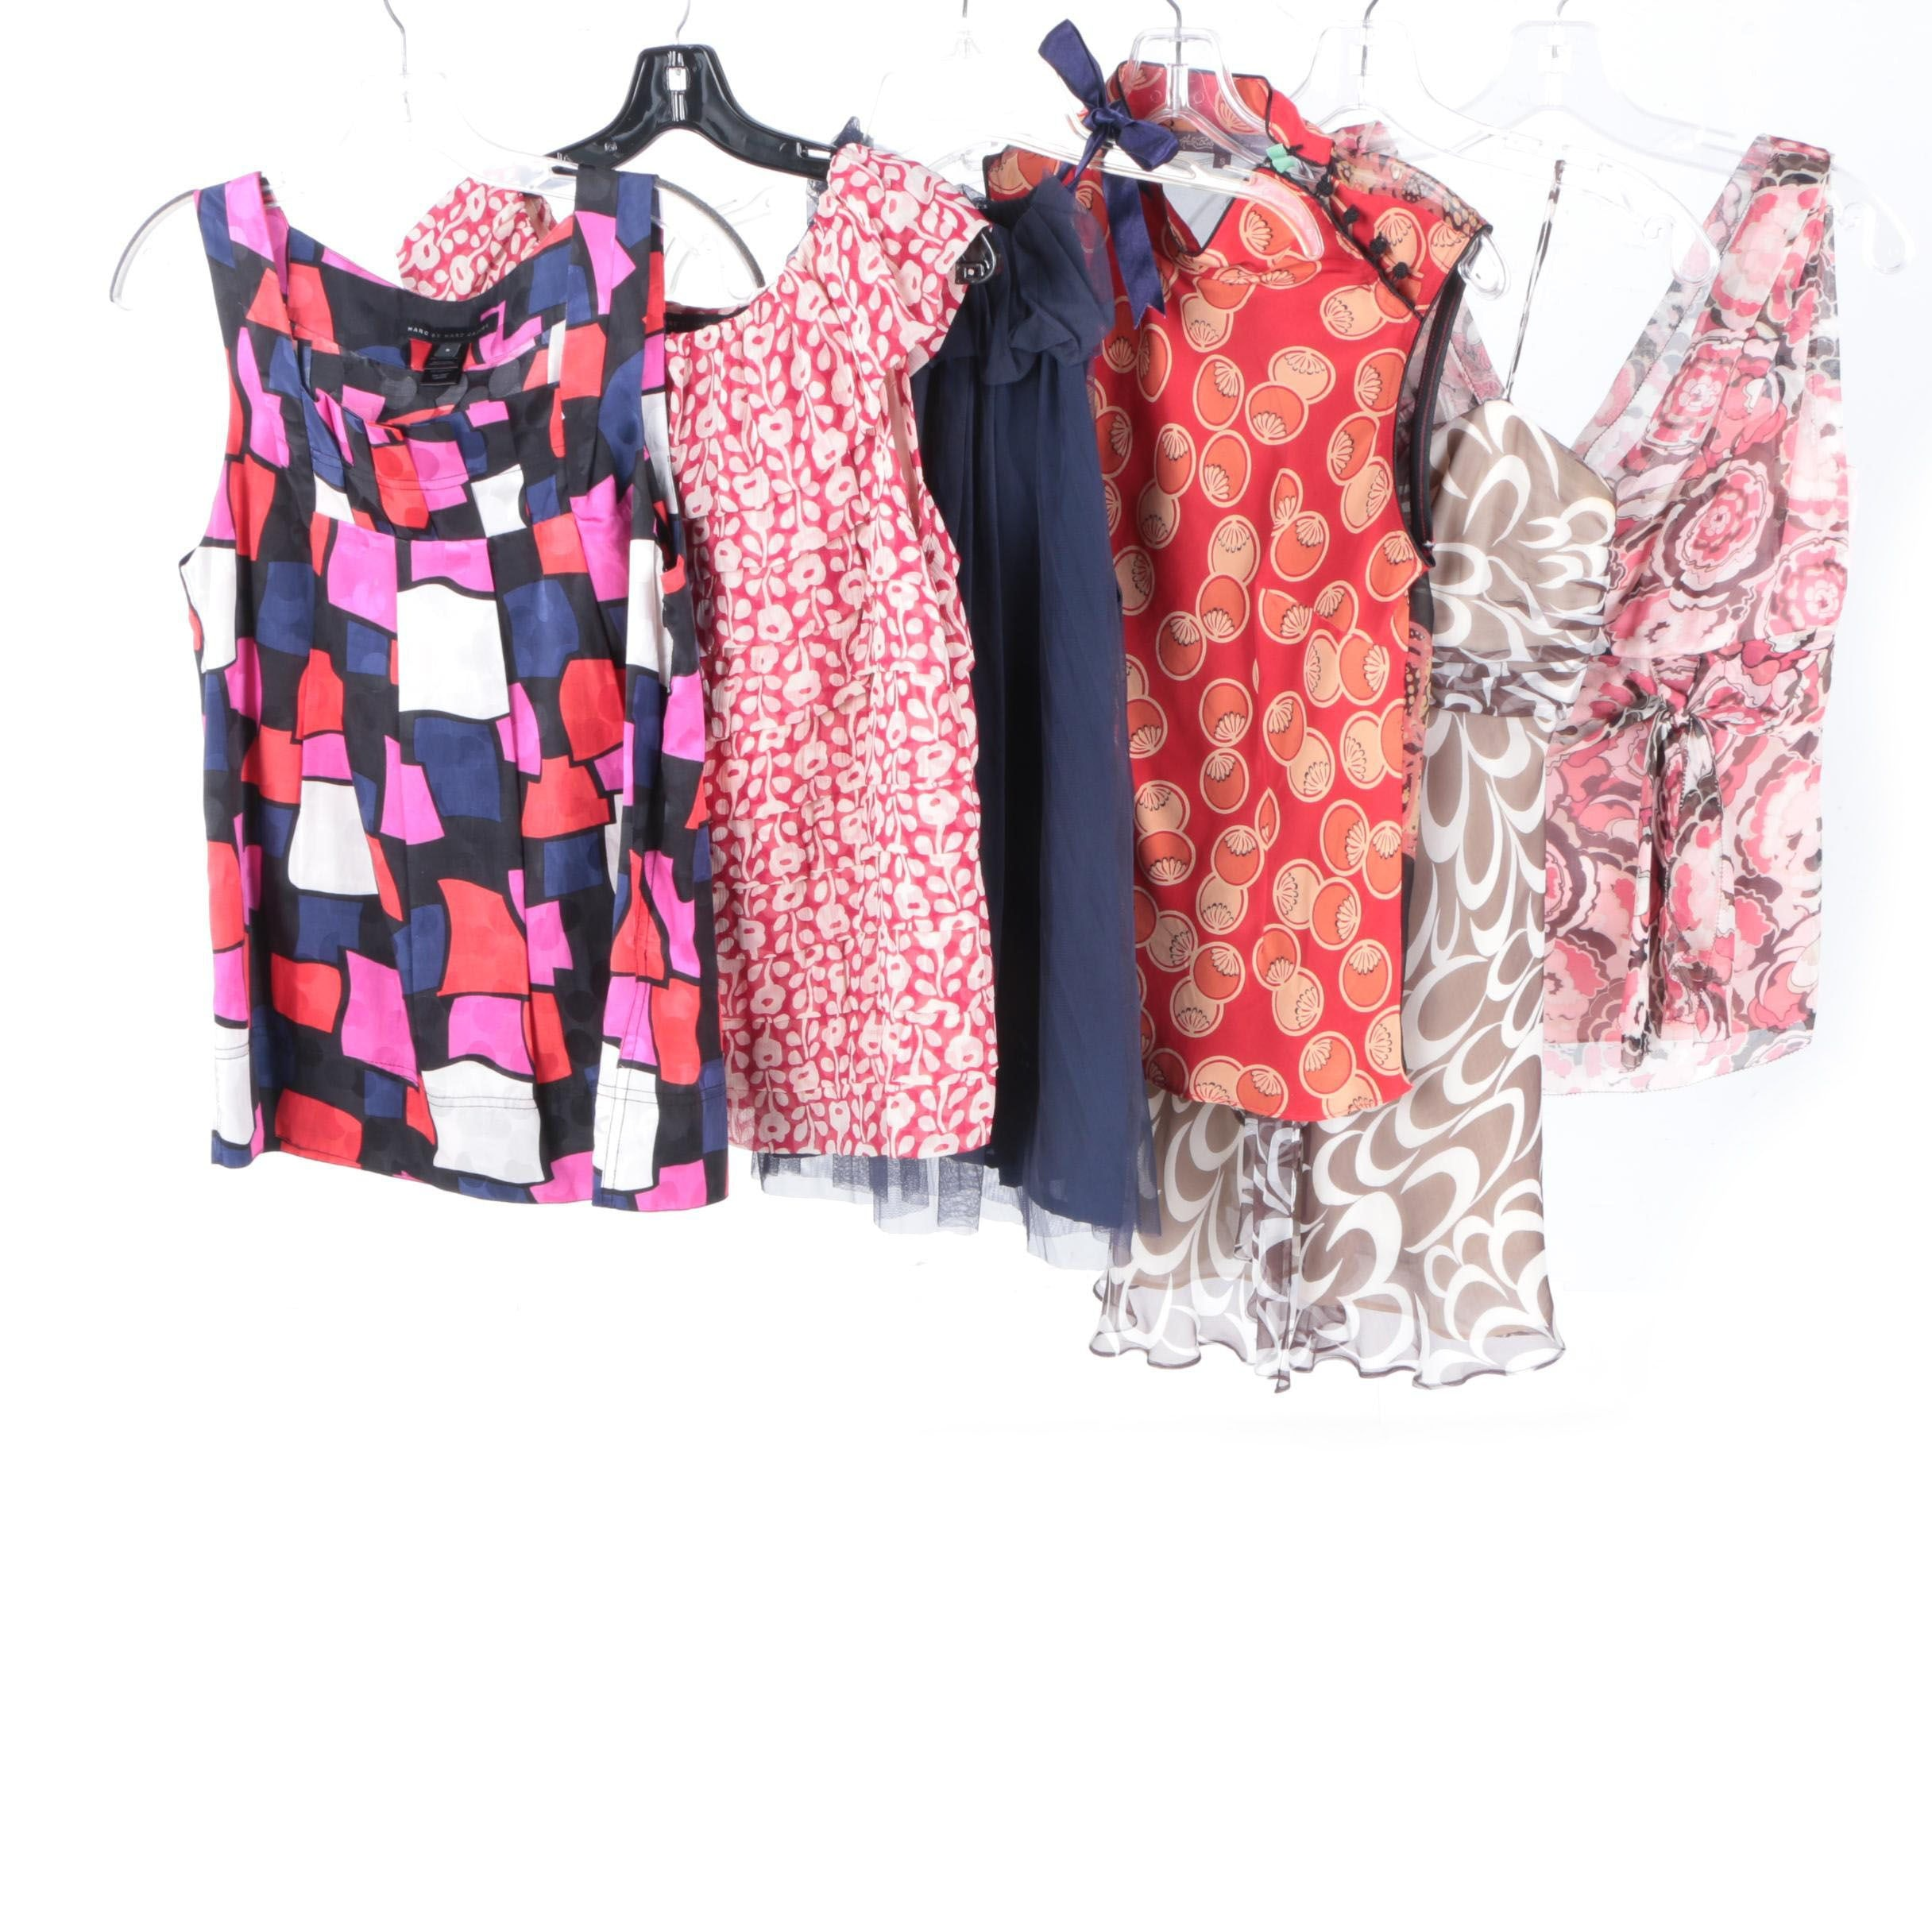 Women's Tops including Marc by Marc Jacobs